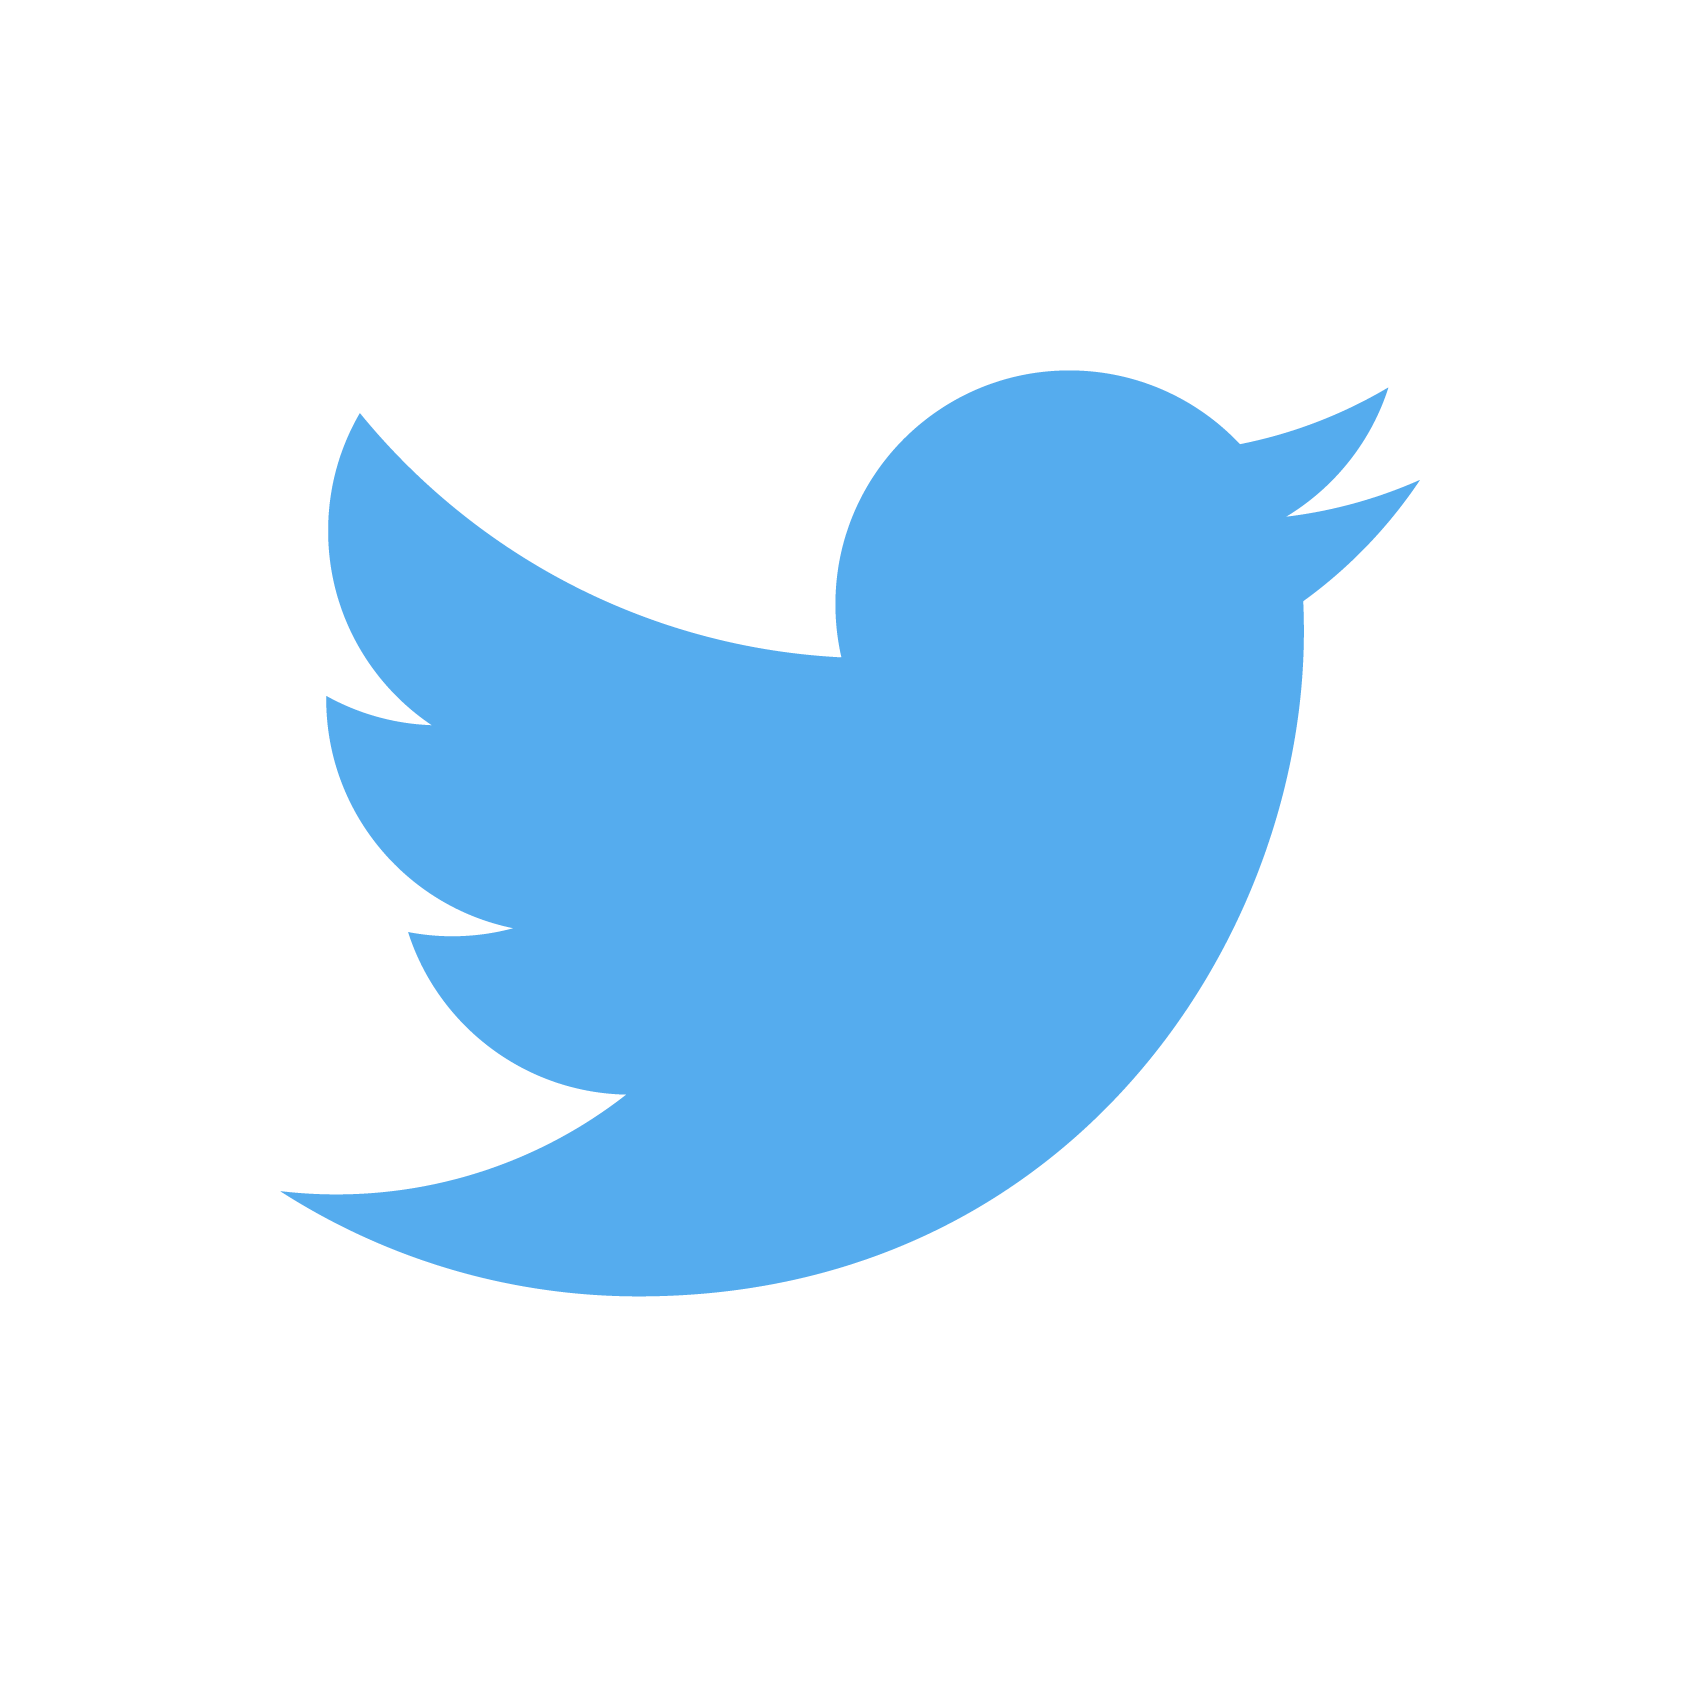 Twitter logo linking to my Twitter account